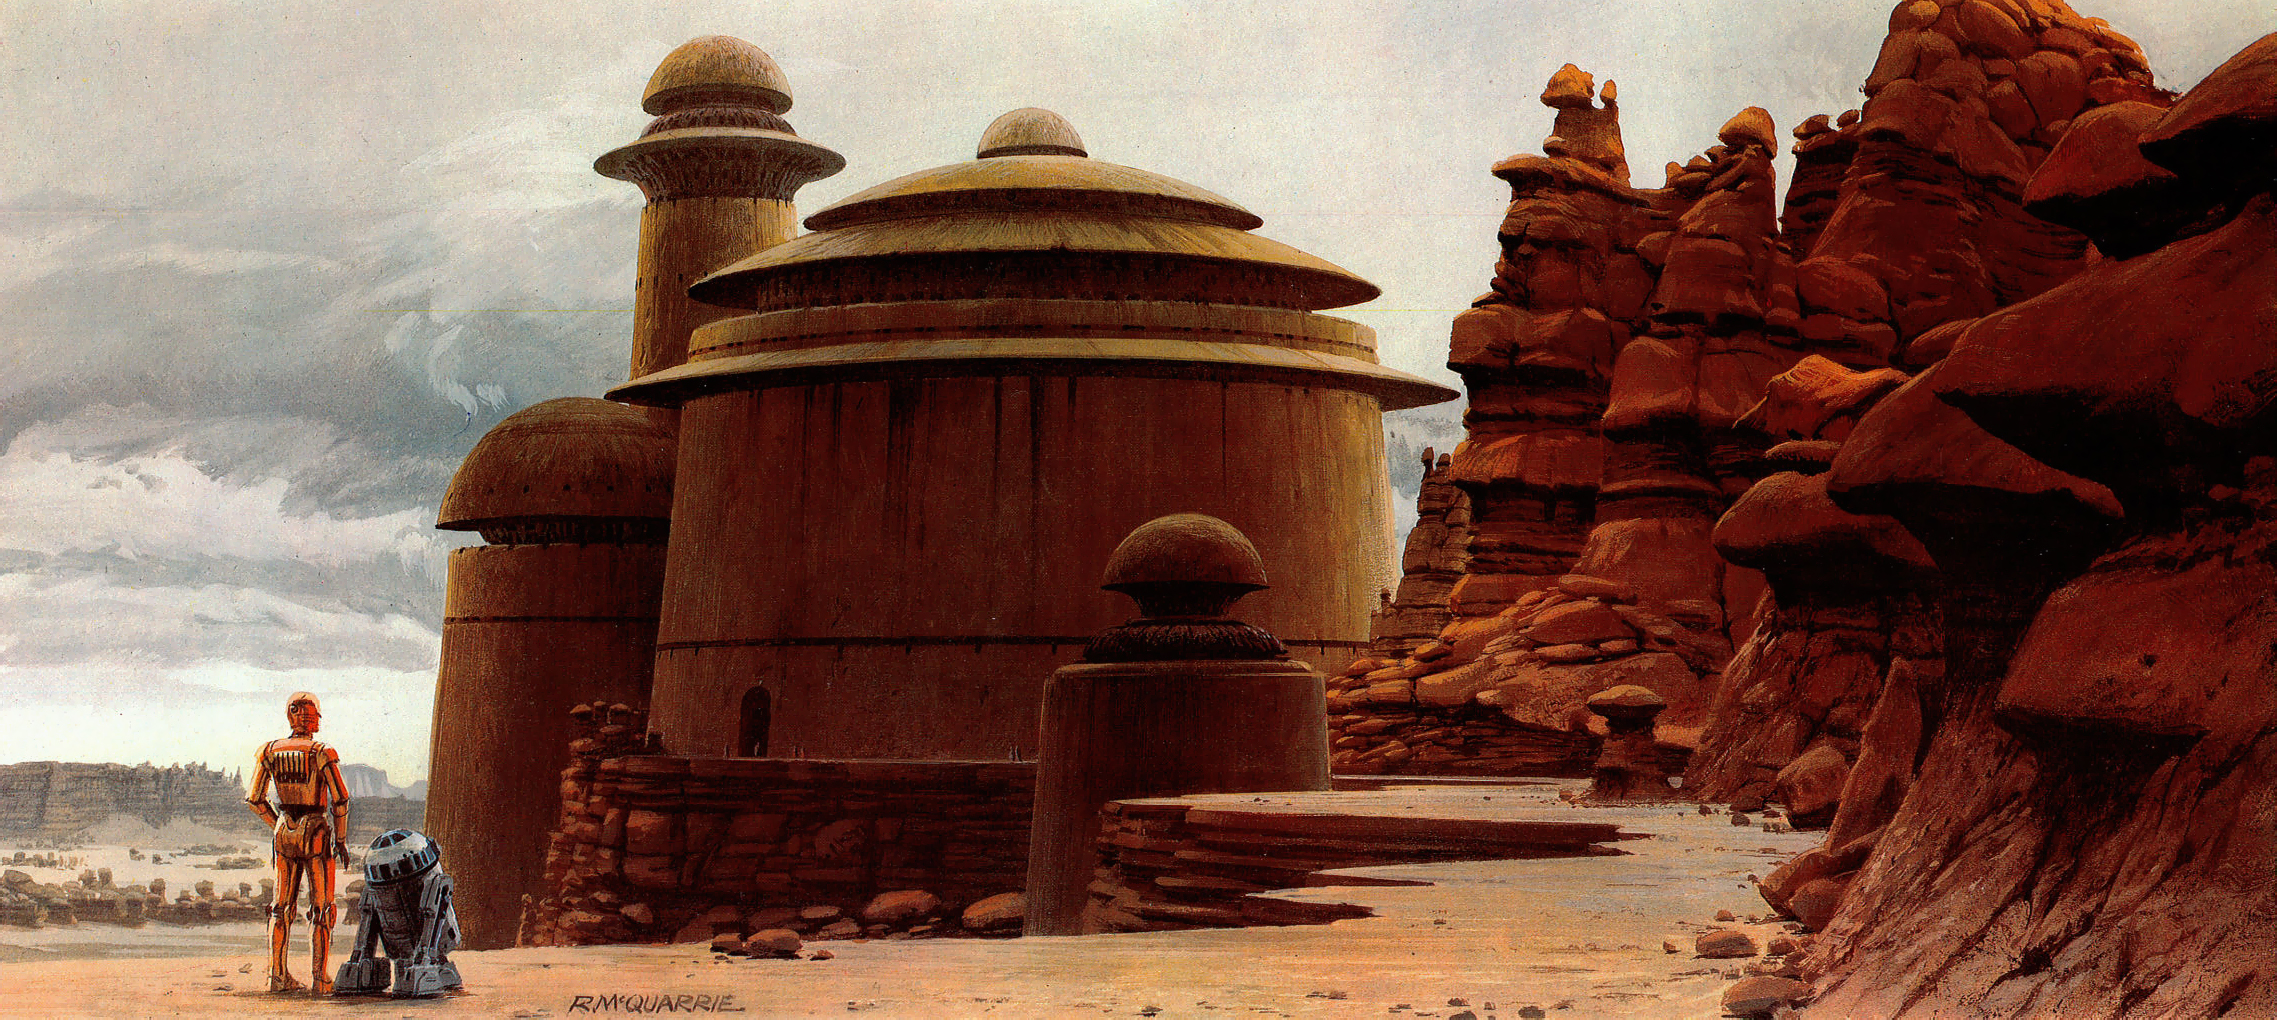 Concept art by Ralph McQuarrie of Jabba's Palace